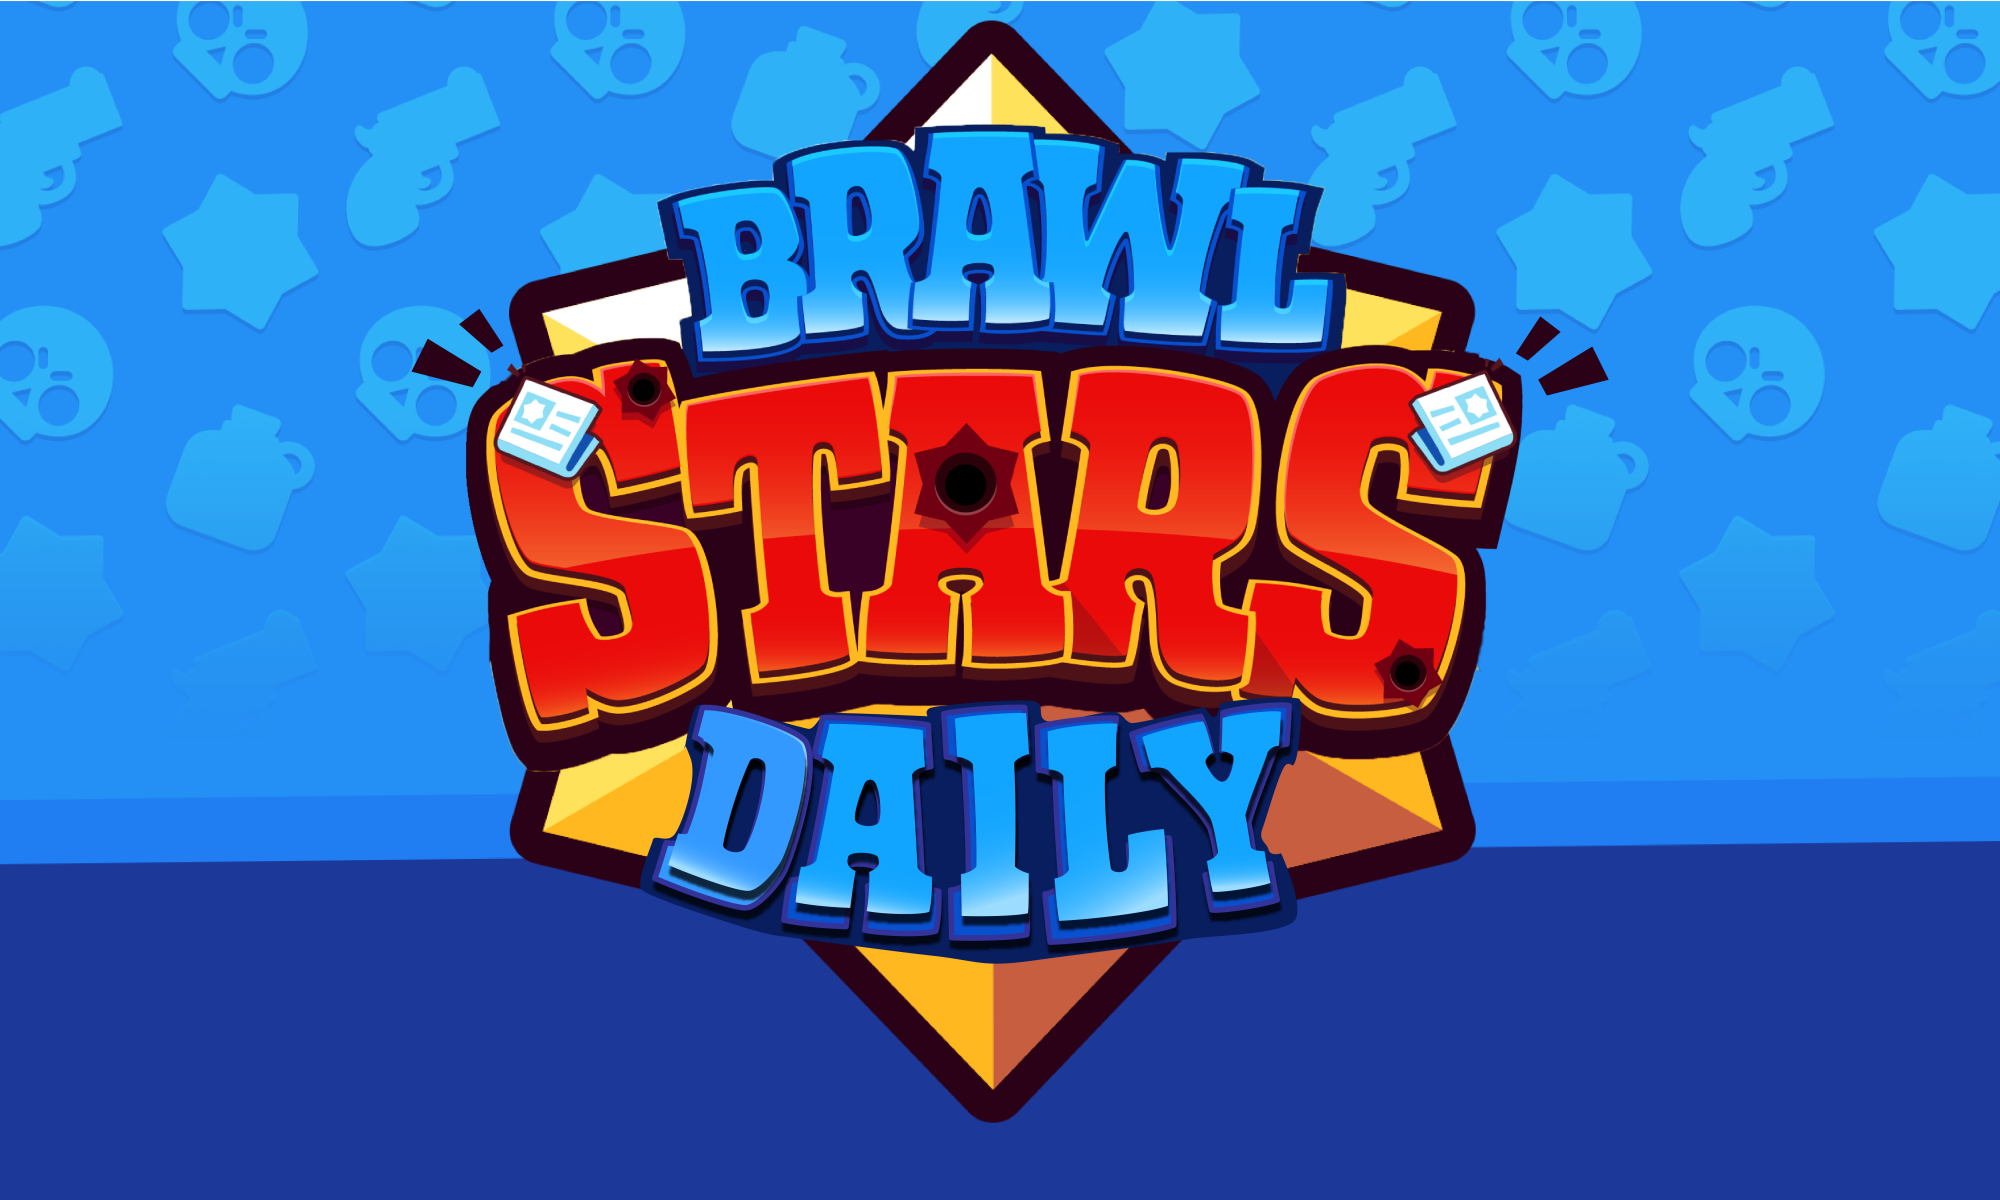 Website Now Provides Brawl Stars Tips for Players